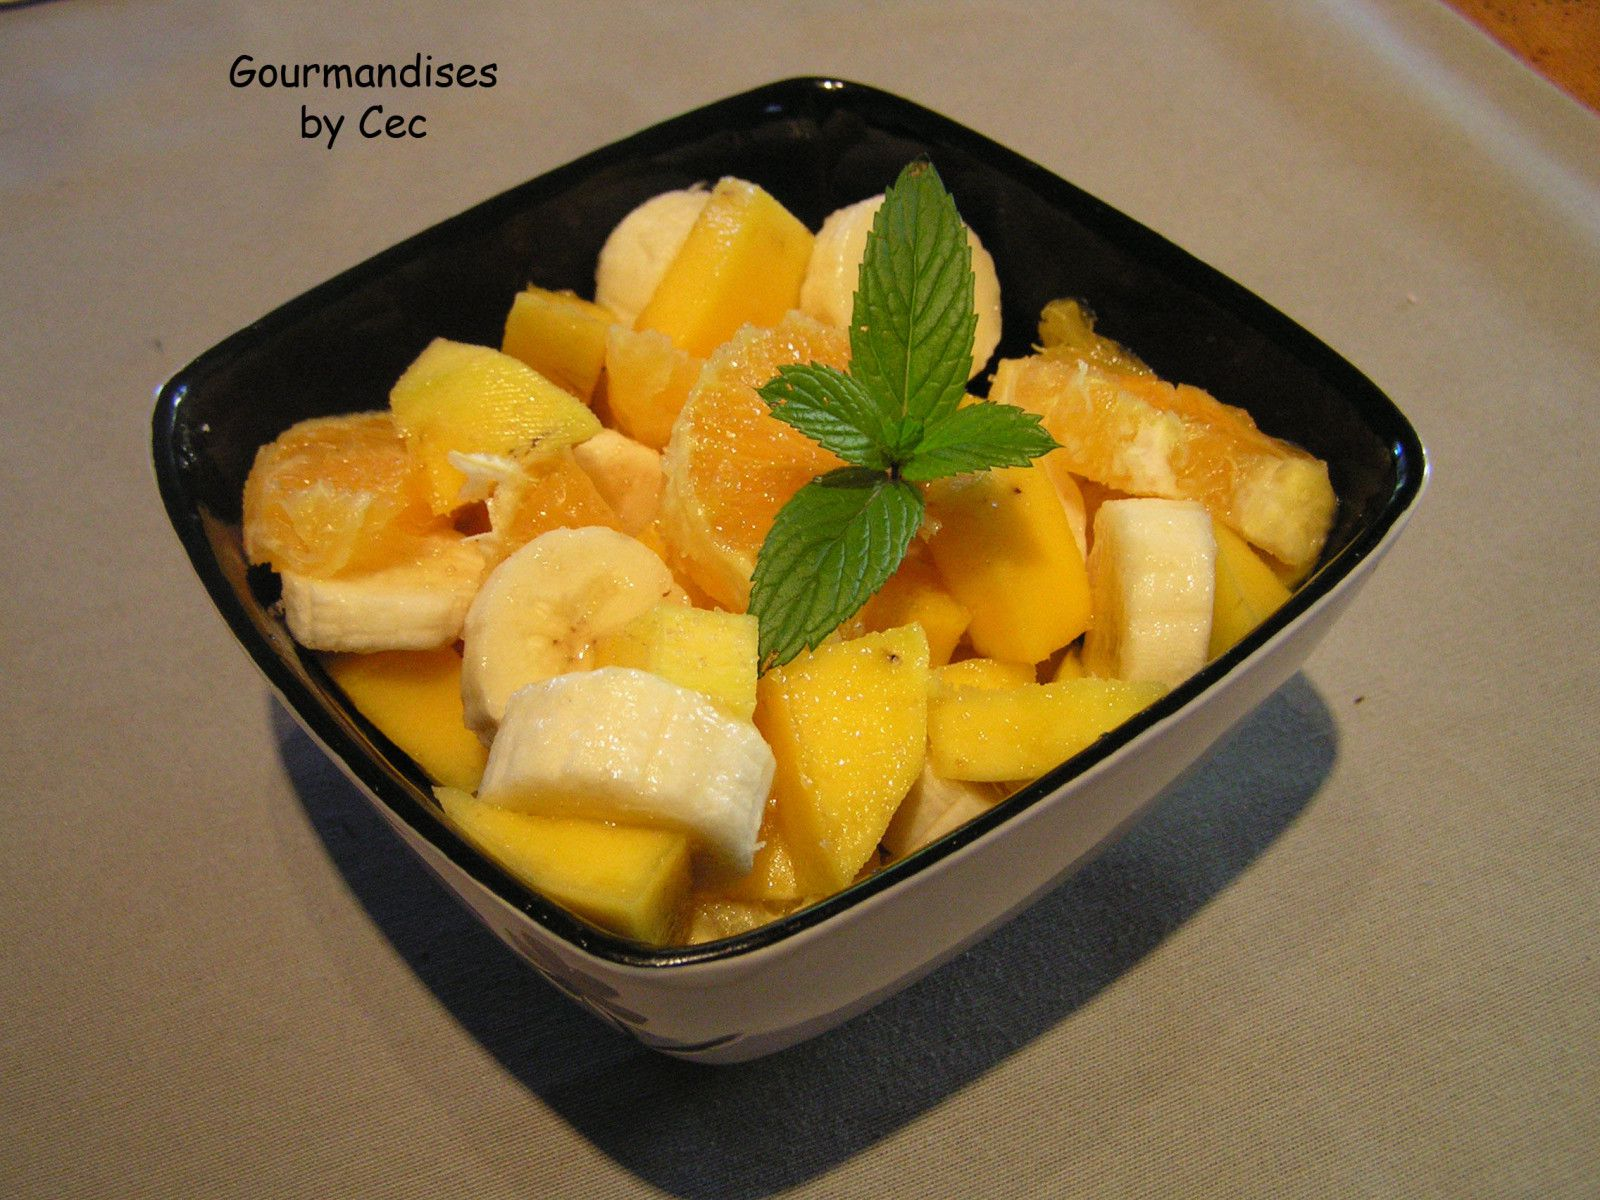 Salade de fruits dautomne - Gourmandises